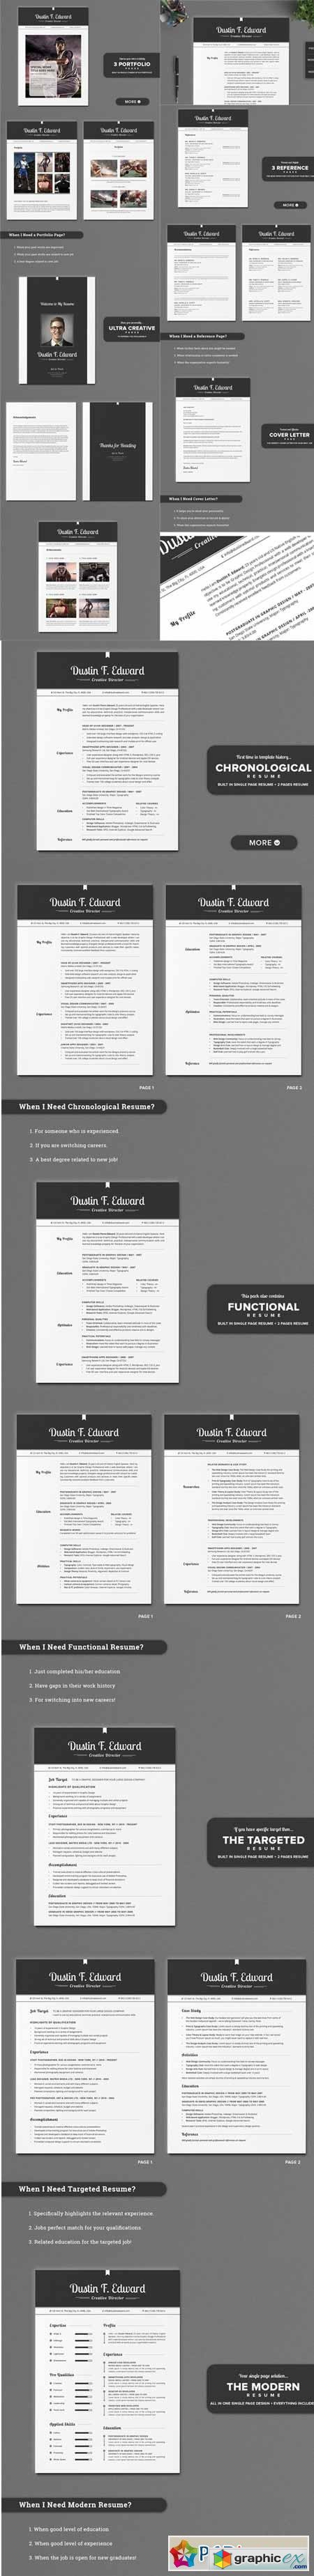 All in One Elegant Resume CV Pack